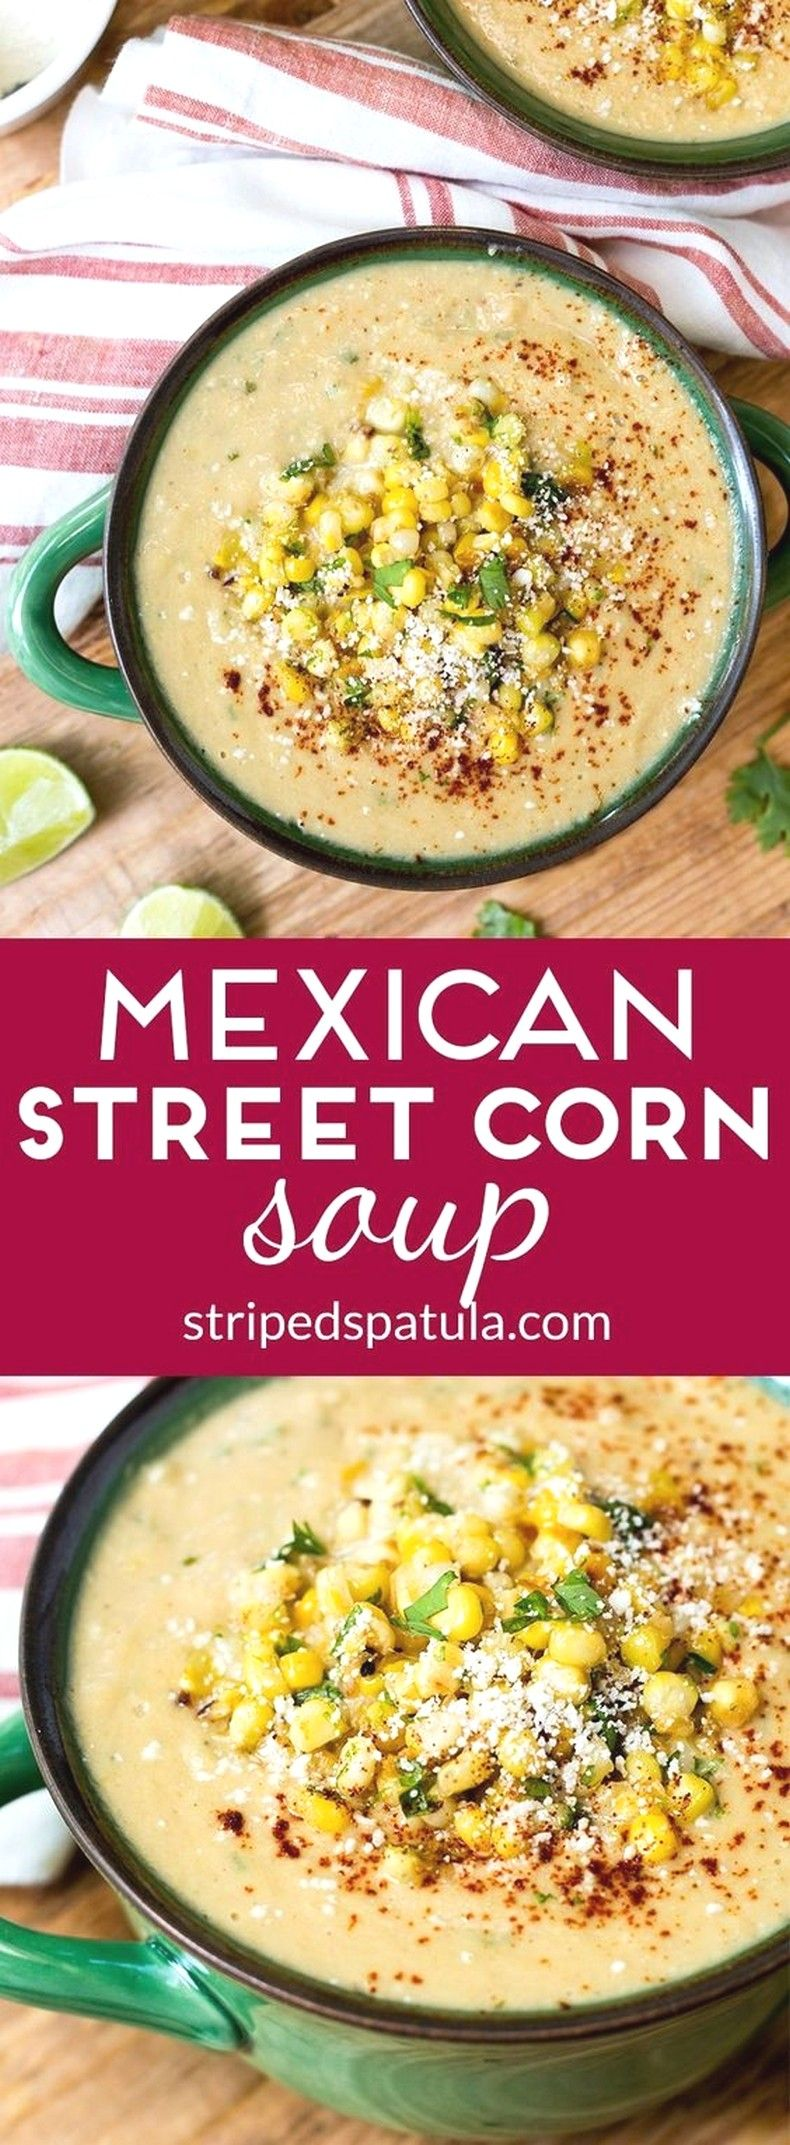 Mexican Street Corn Soup | Easy Soup Recipes Ideas images